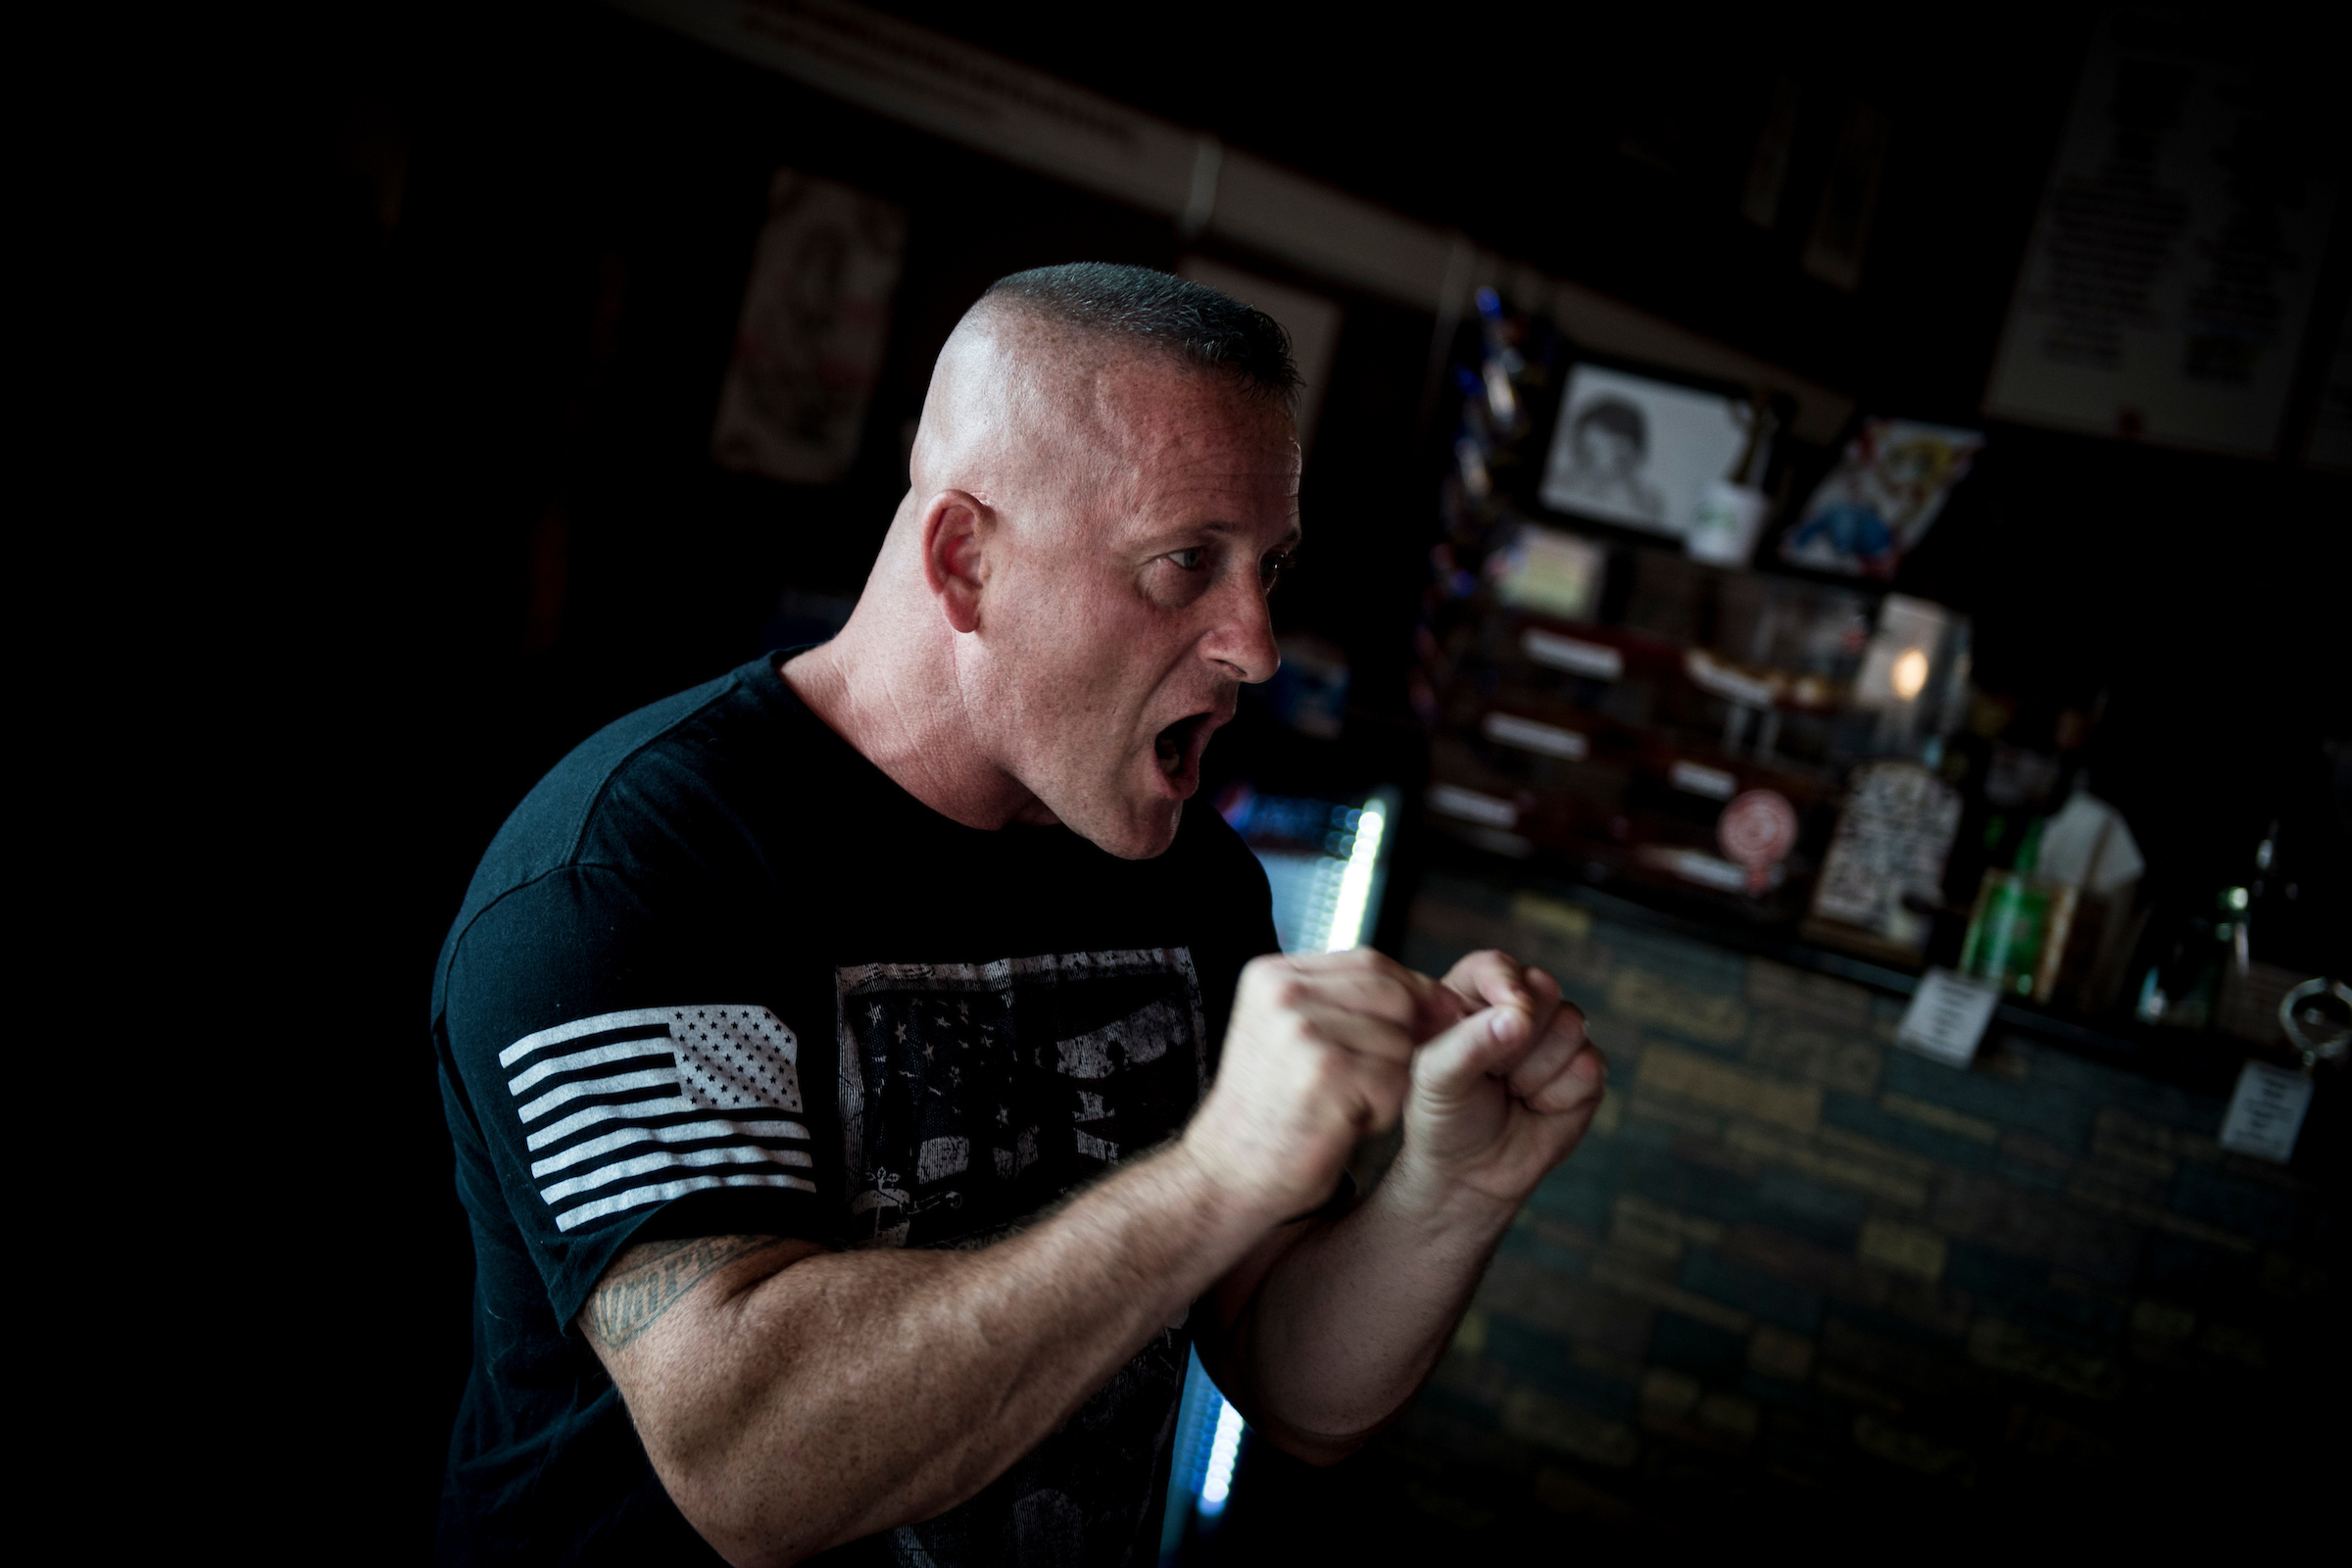 West Virginia state Sen. Richard Ojeda has become a media star this year, with national Democrats now behind his campaign for the House. But it wasn't always that way. (Sarah Silbiger/CQ Roll Call)